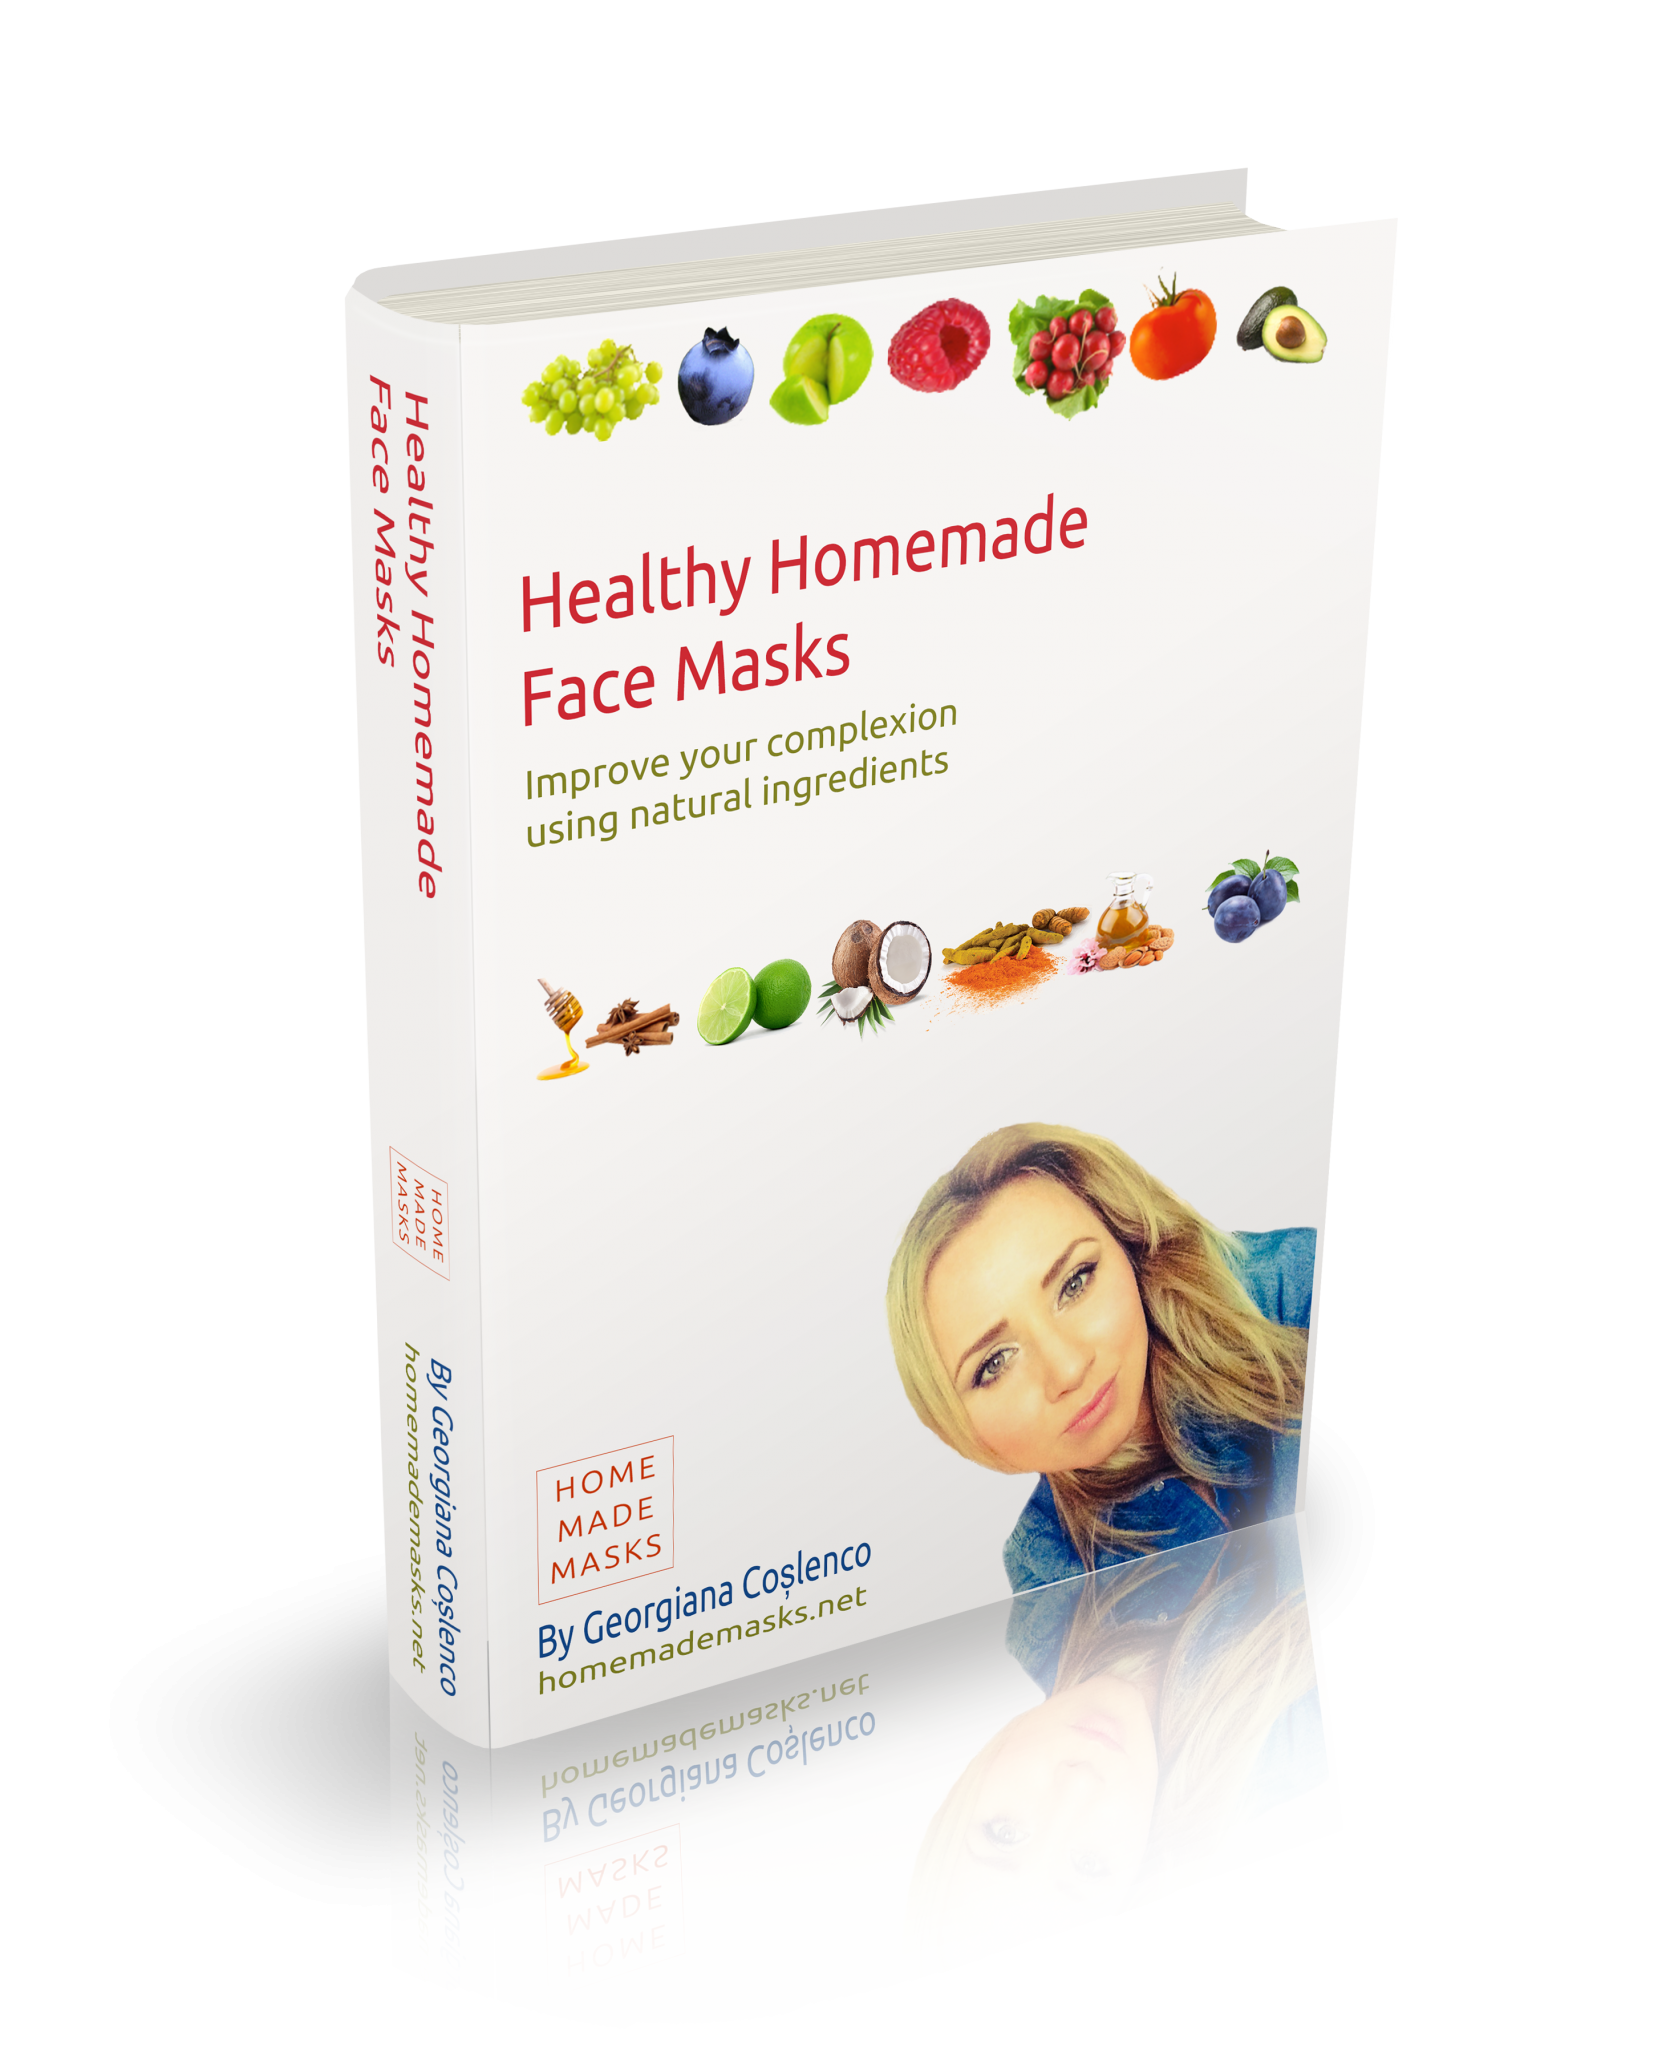 Healthy Home Made Face Masks Book Cover